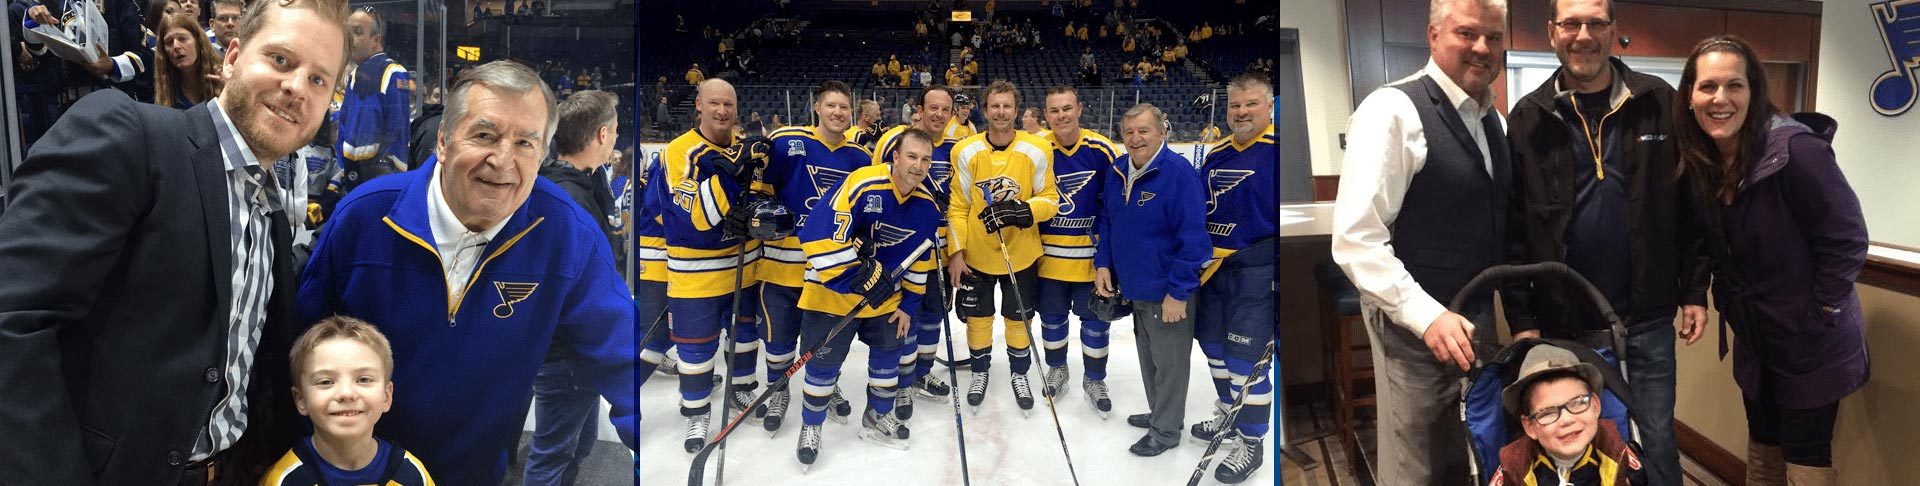 collage of three different St. Louis Blues Alumni appearances